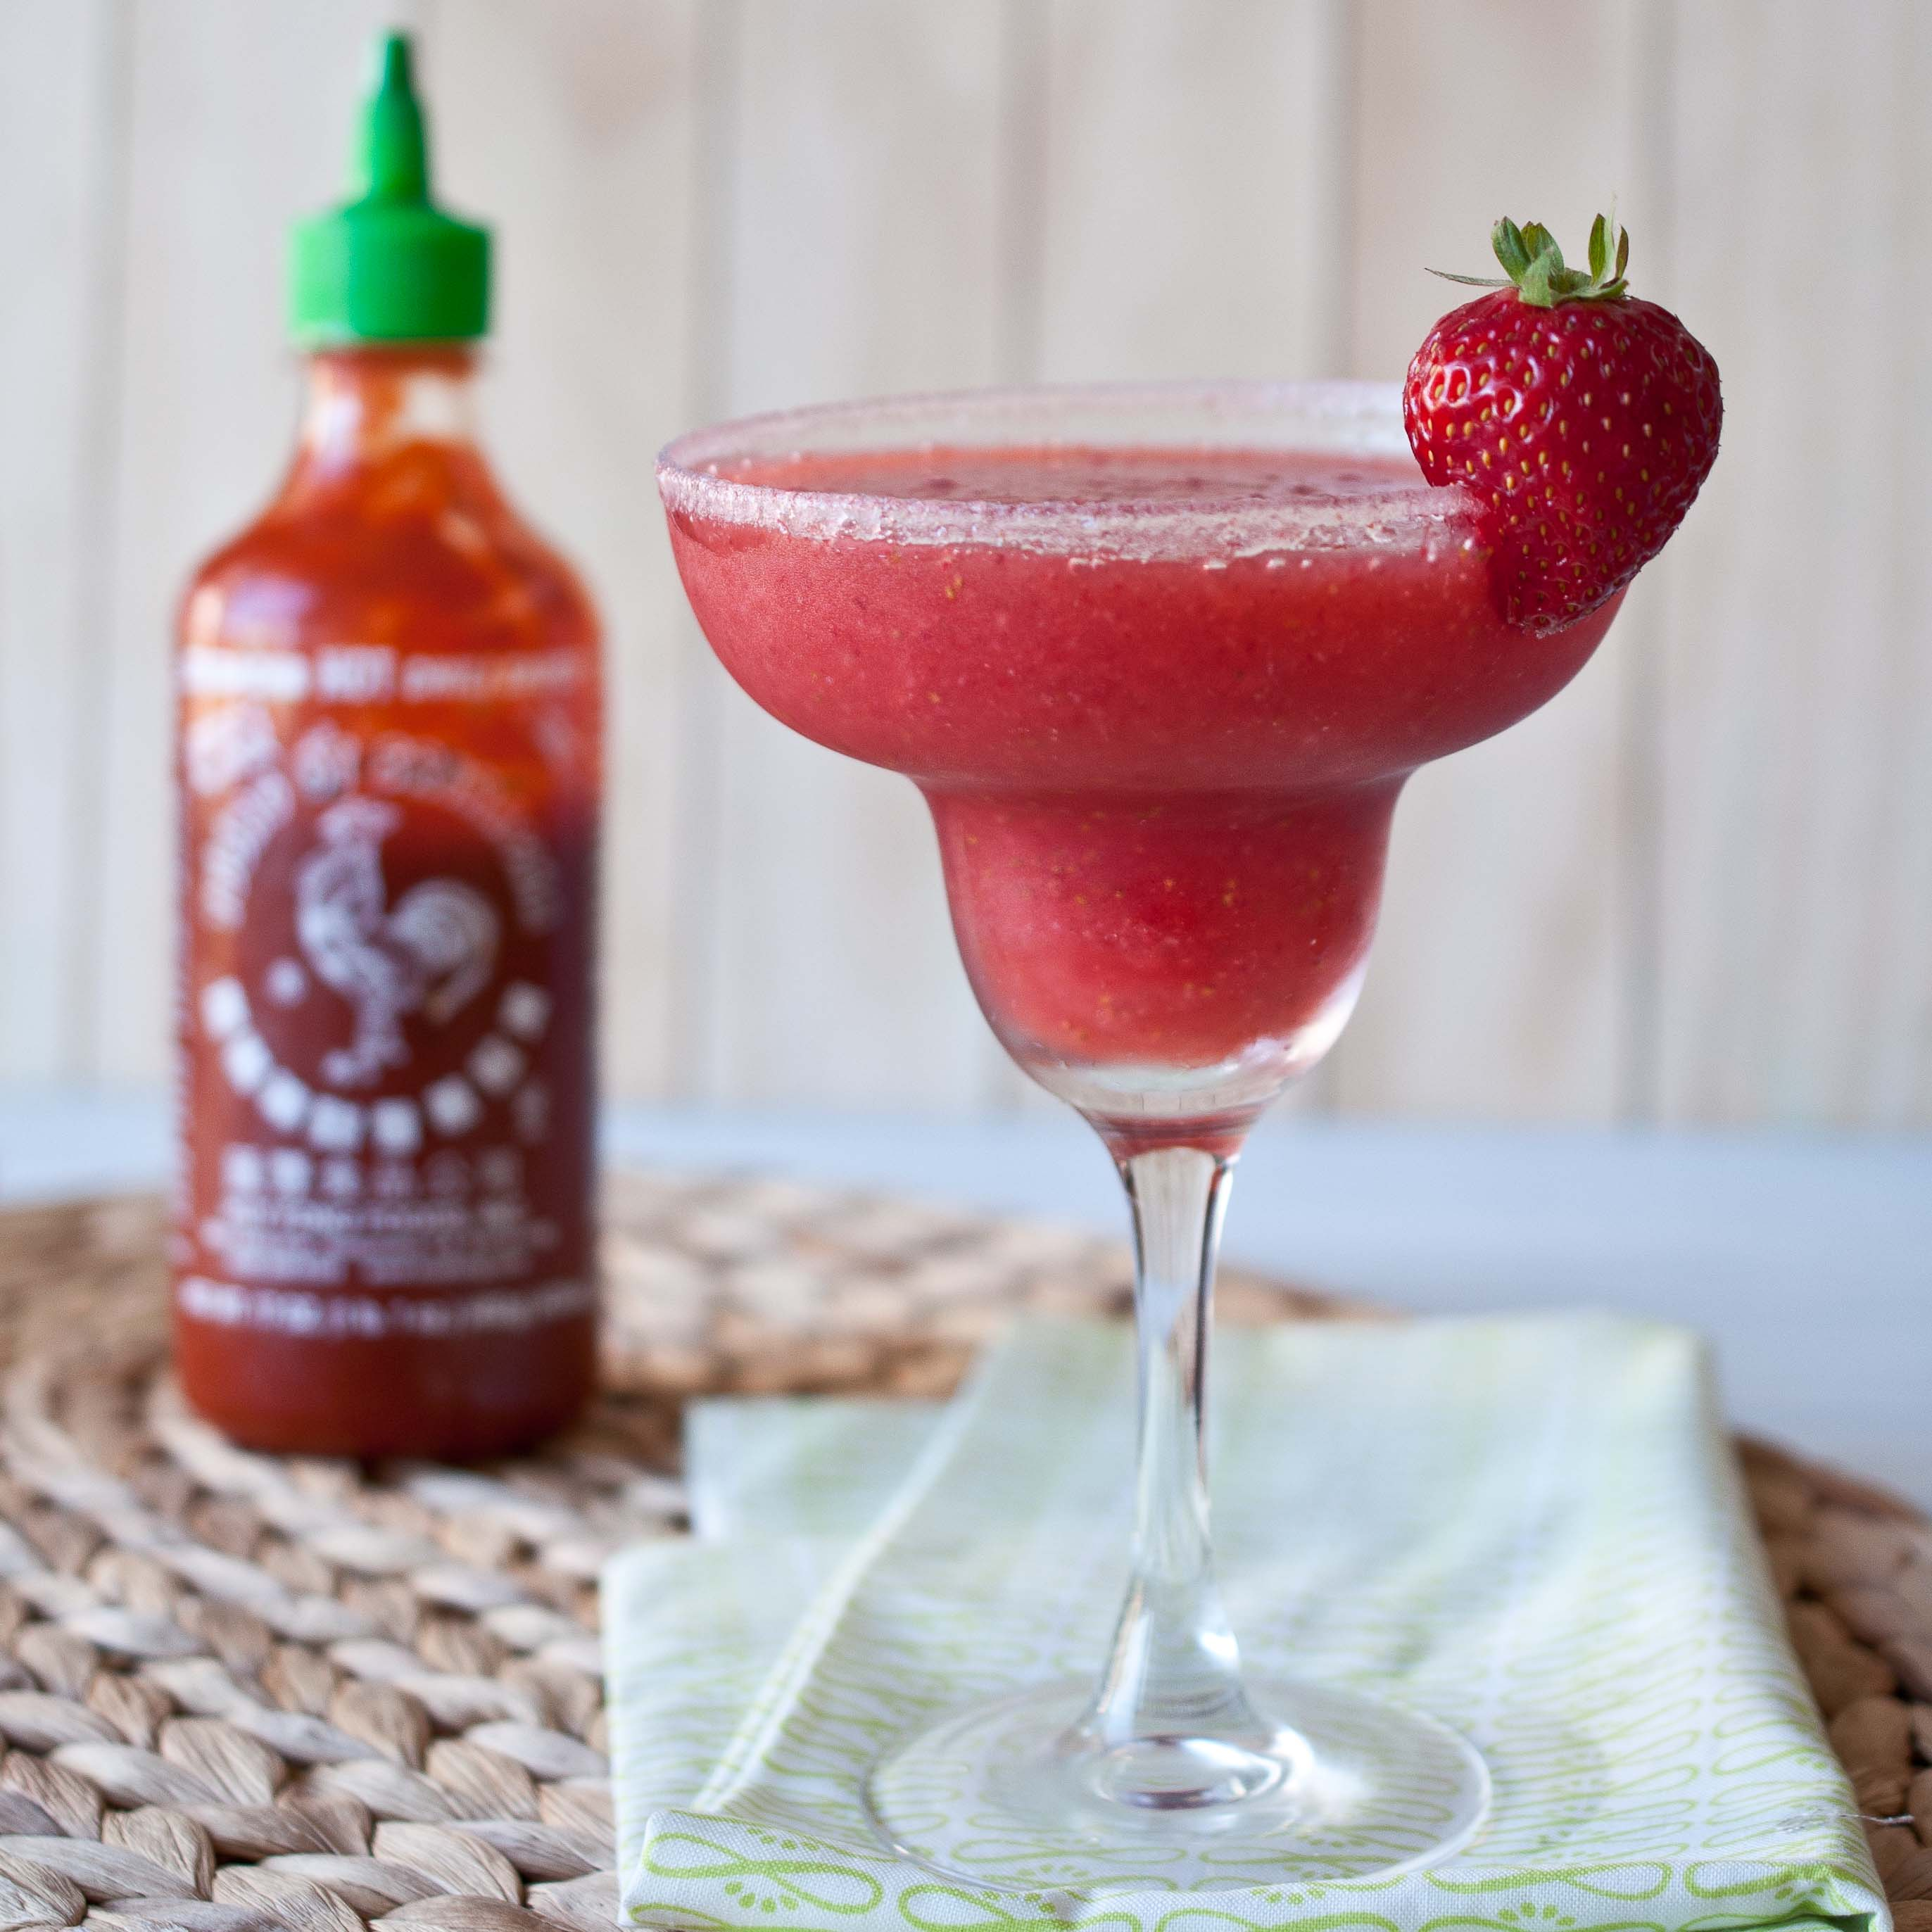 Strawberry Sriracha Margarita, sweet with the perfect kick of spice